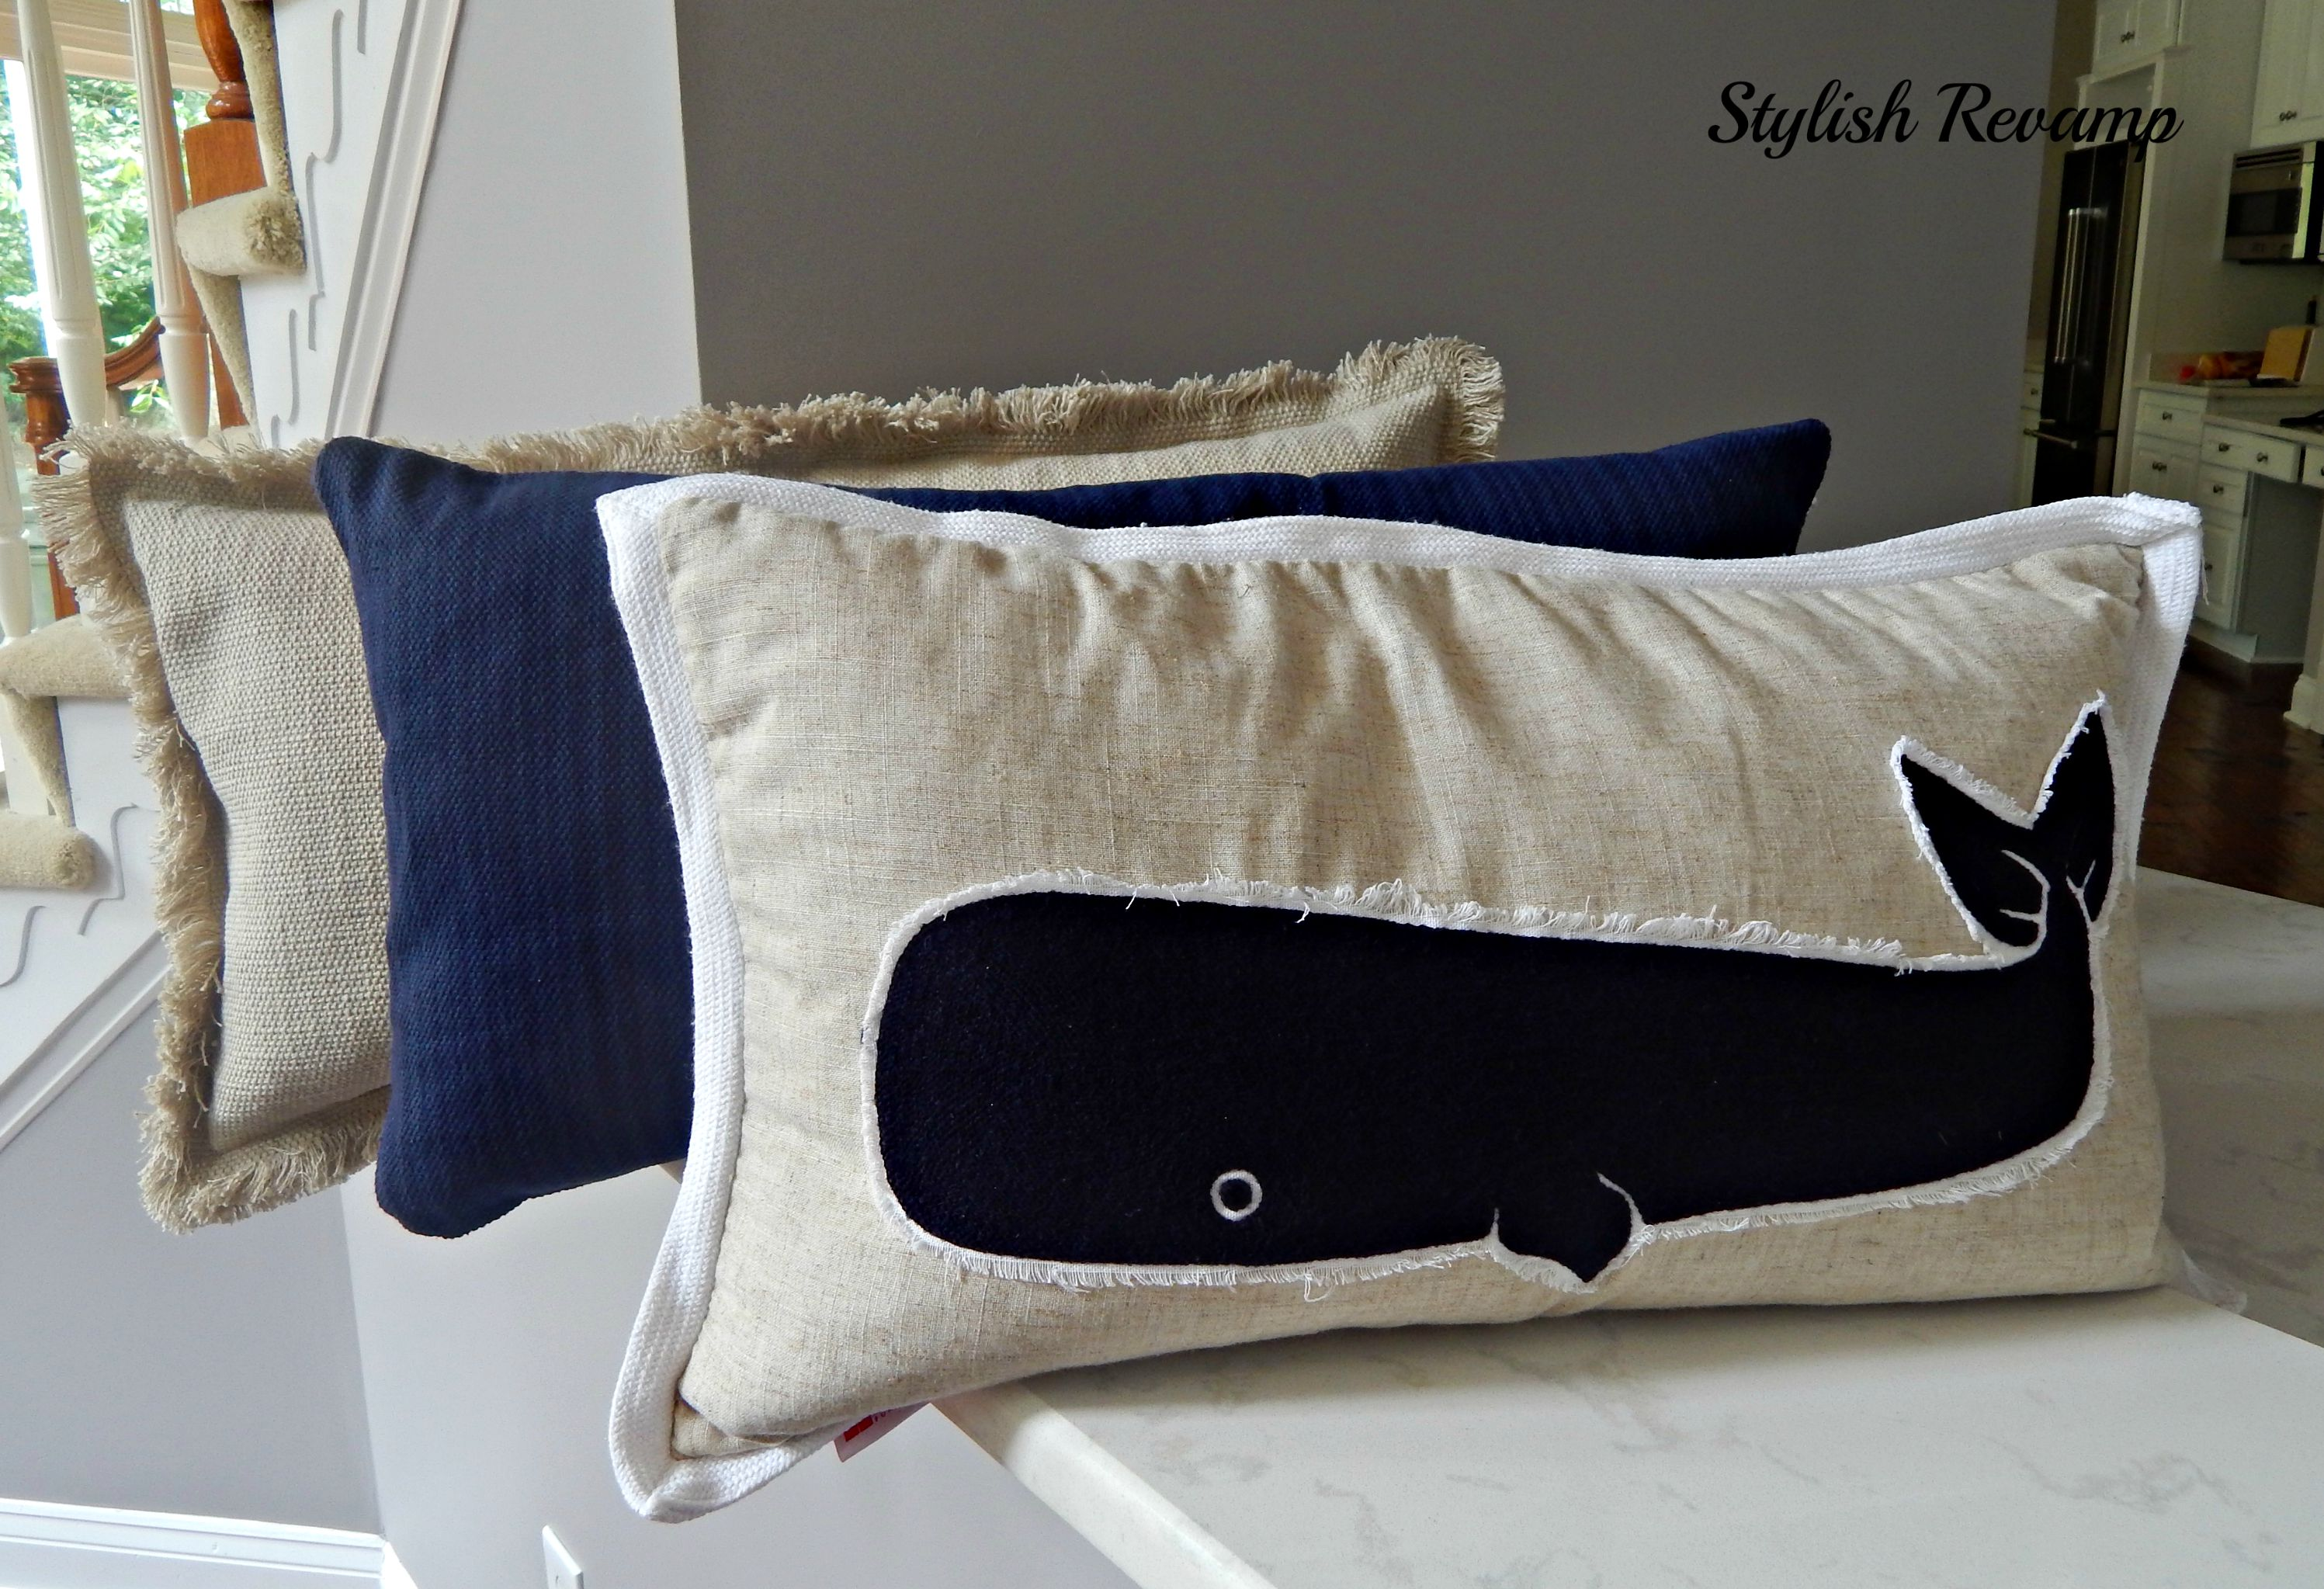 Decorative Pillows Marshalls : Finding the Goods - Stylish Revamp